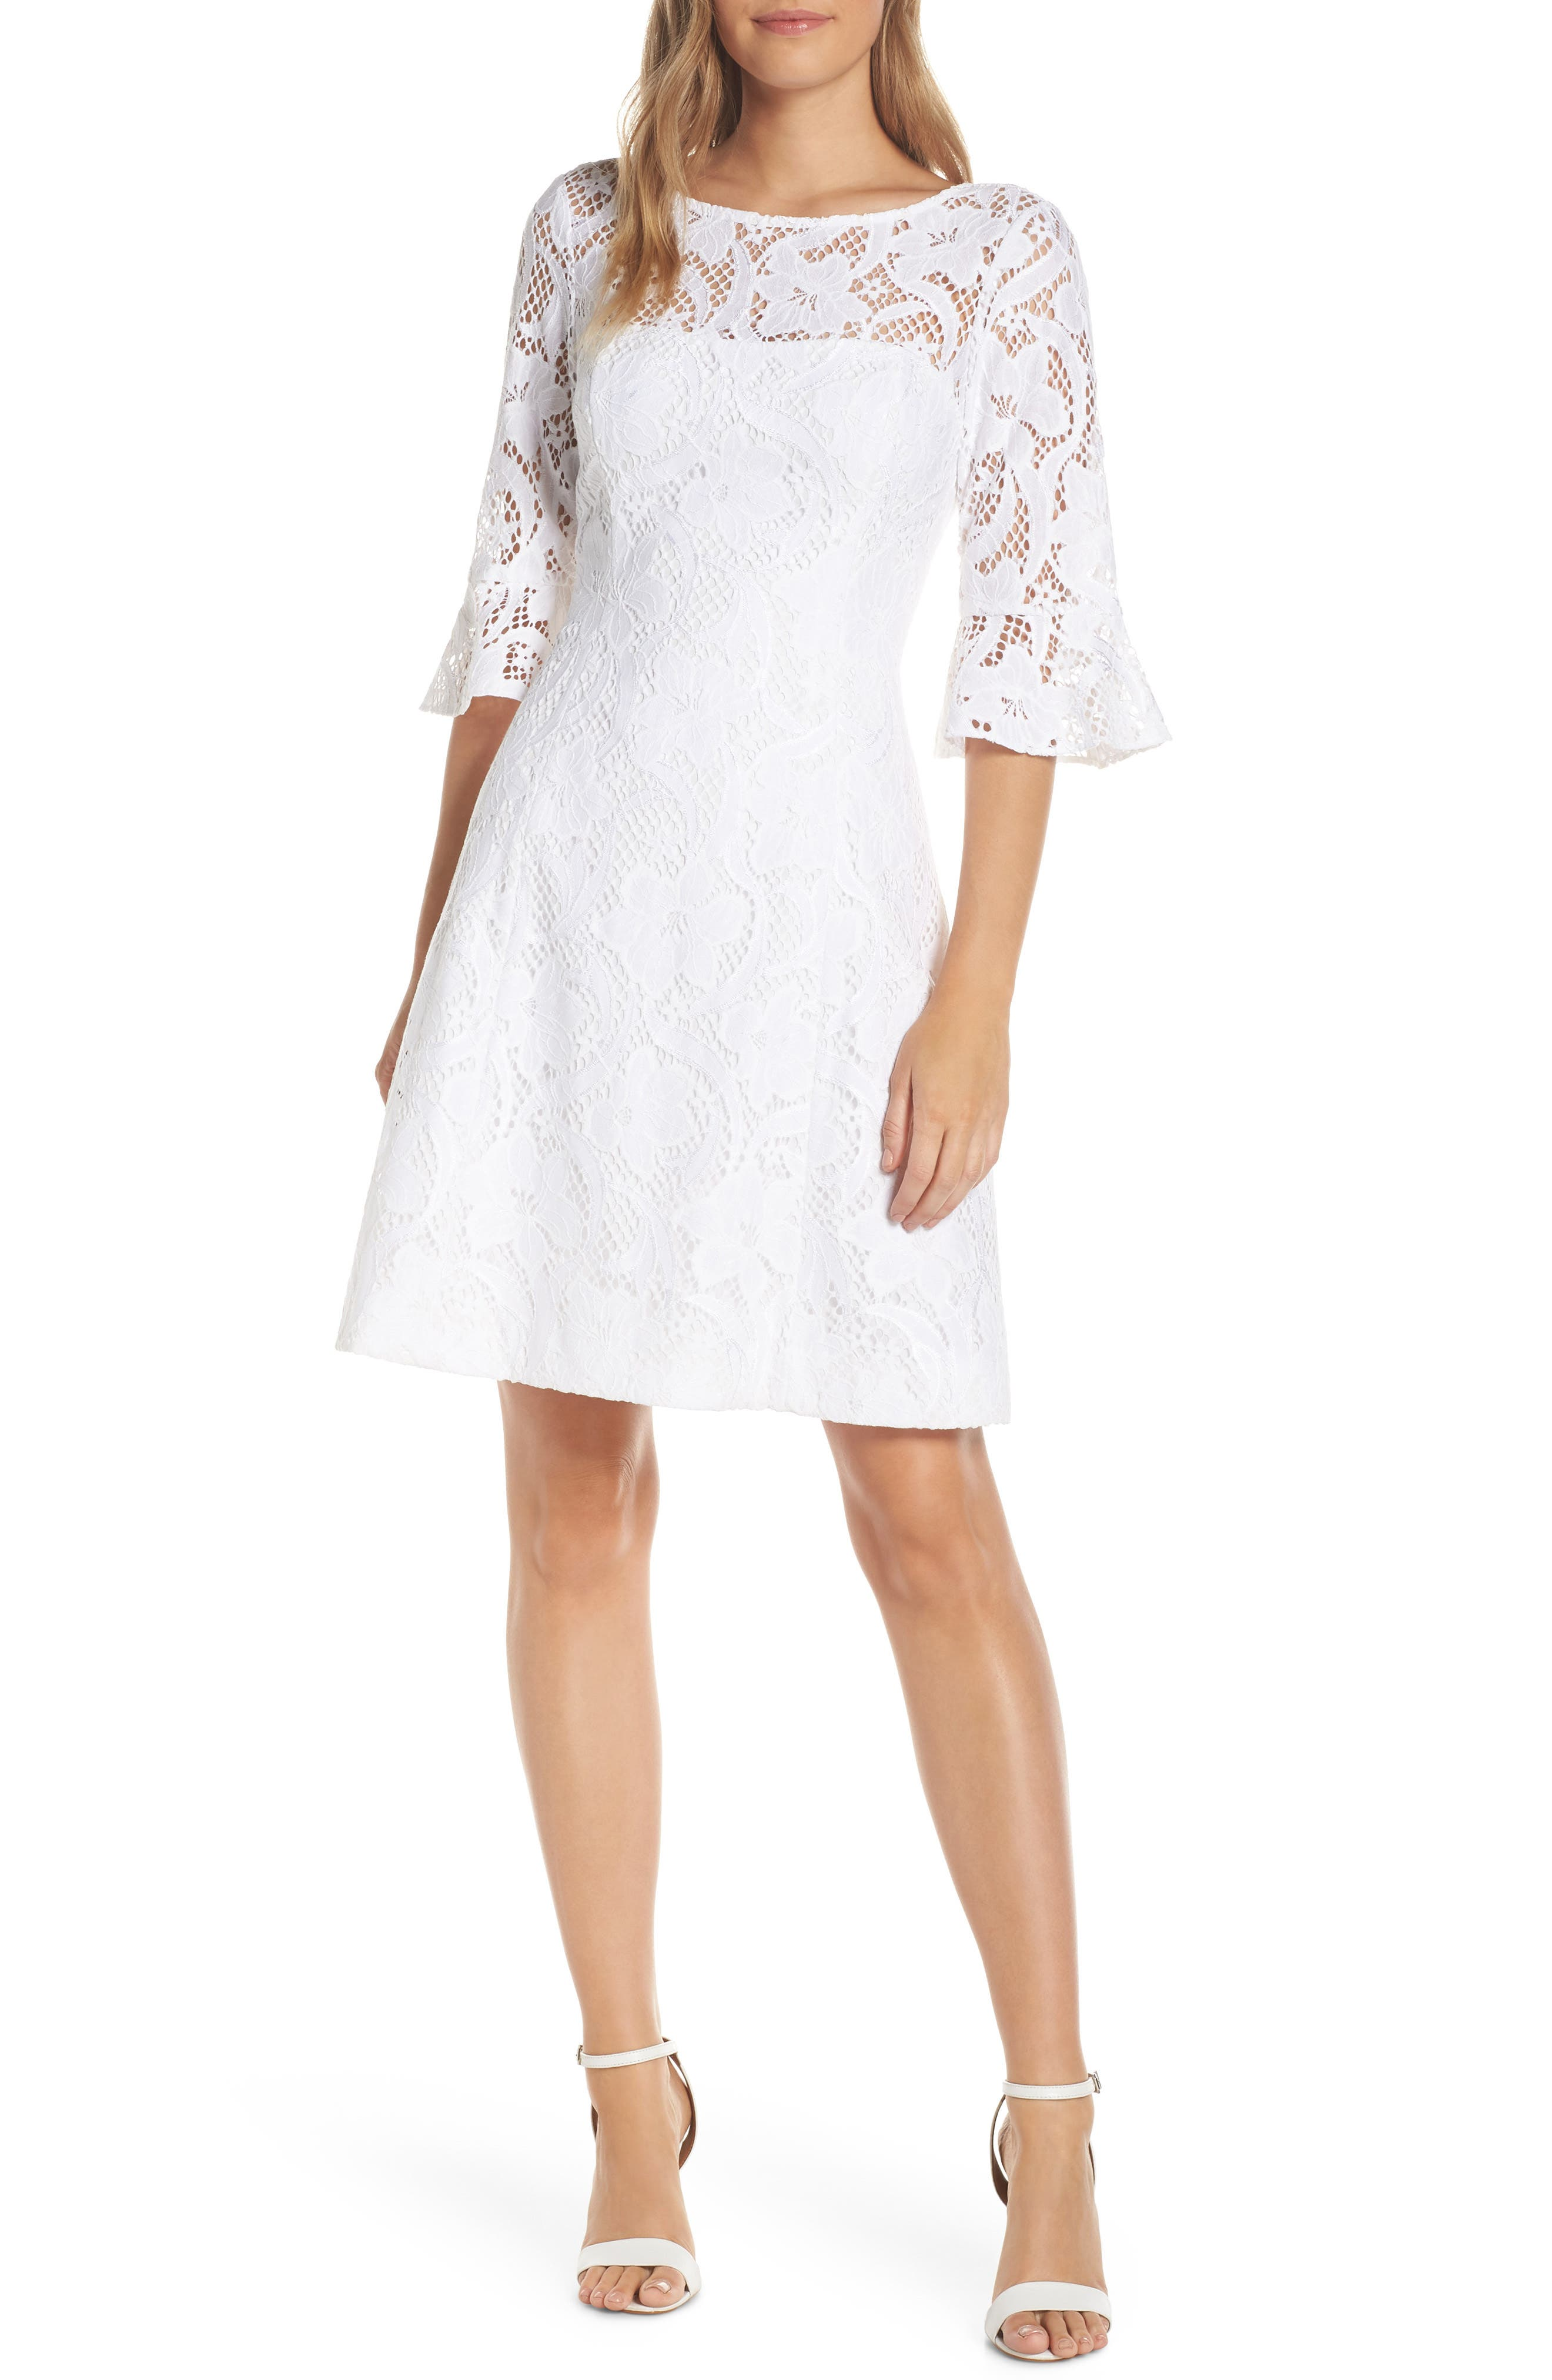 Lilly Pulitzer Allyson Lace Fit & Flare Dress, White